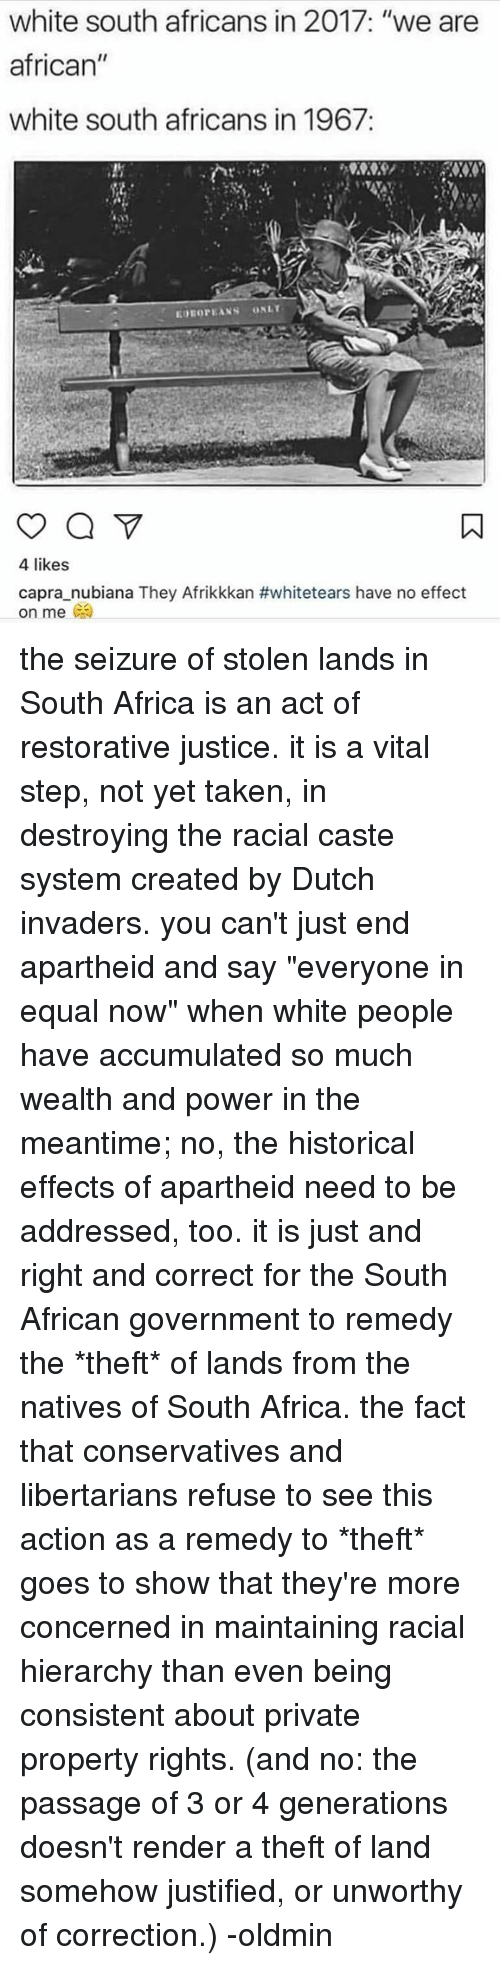 White south africans are assholes